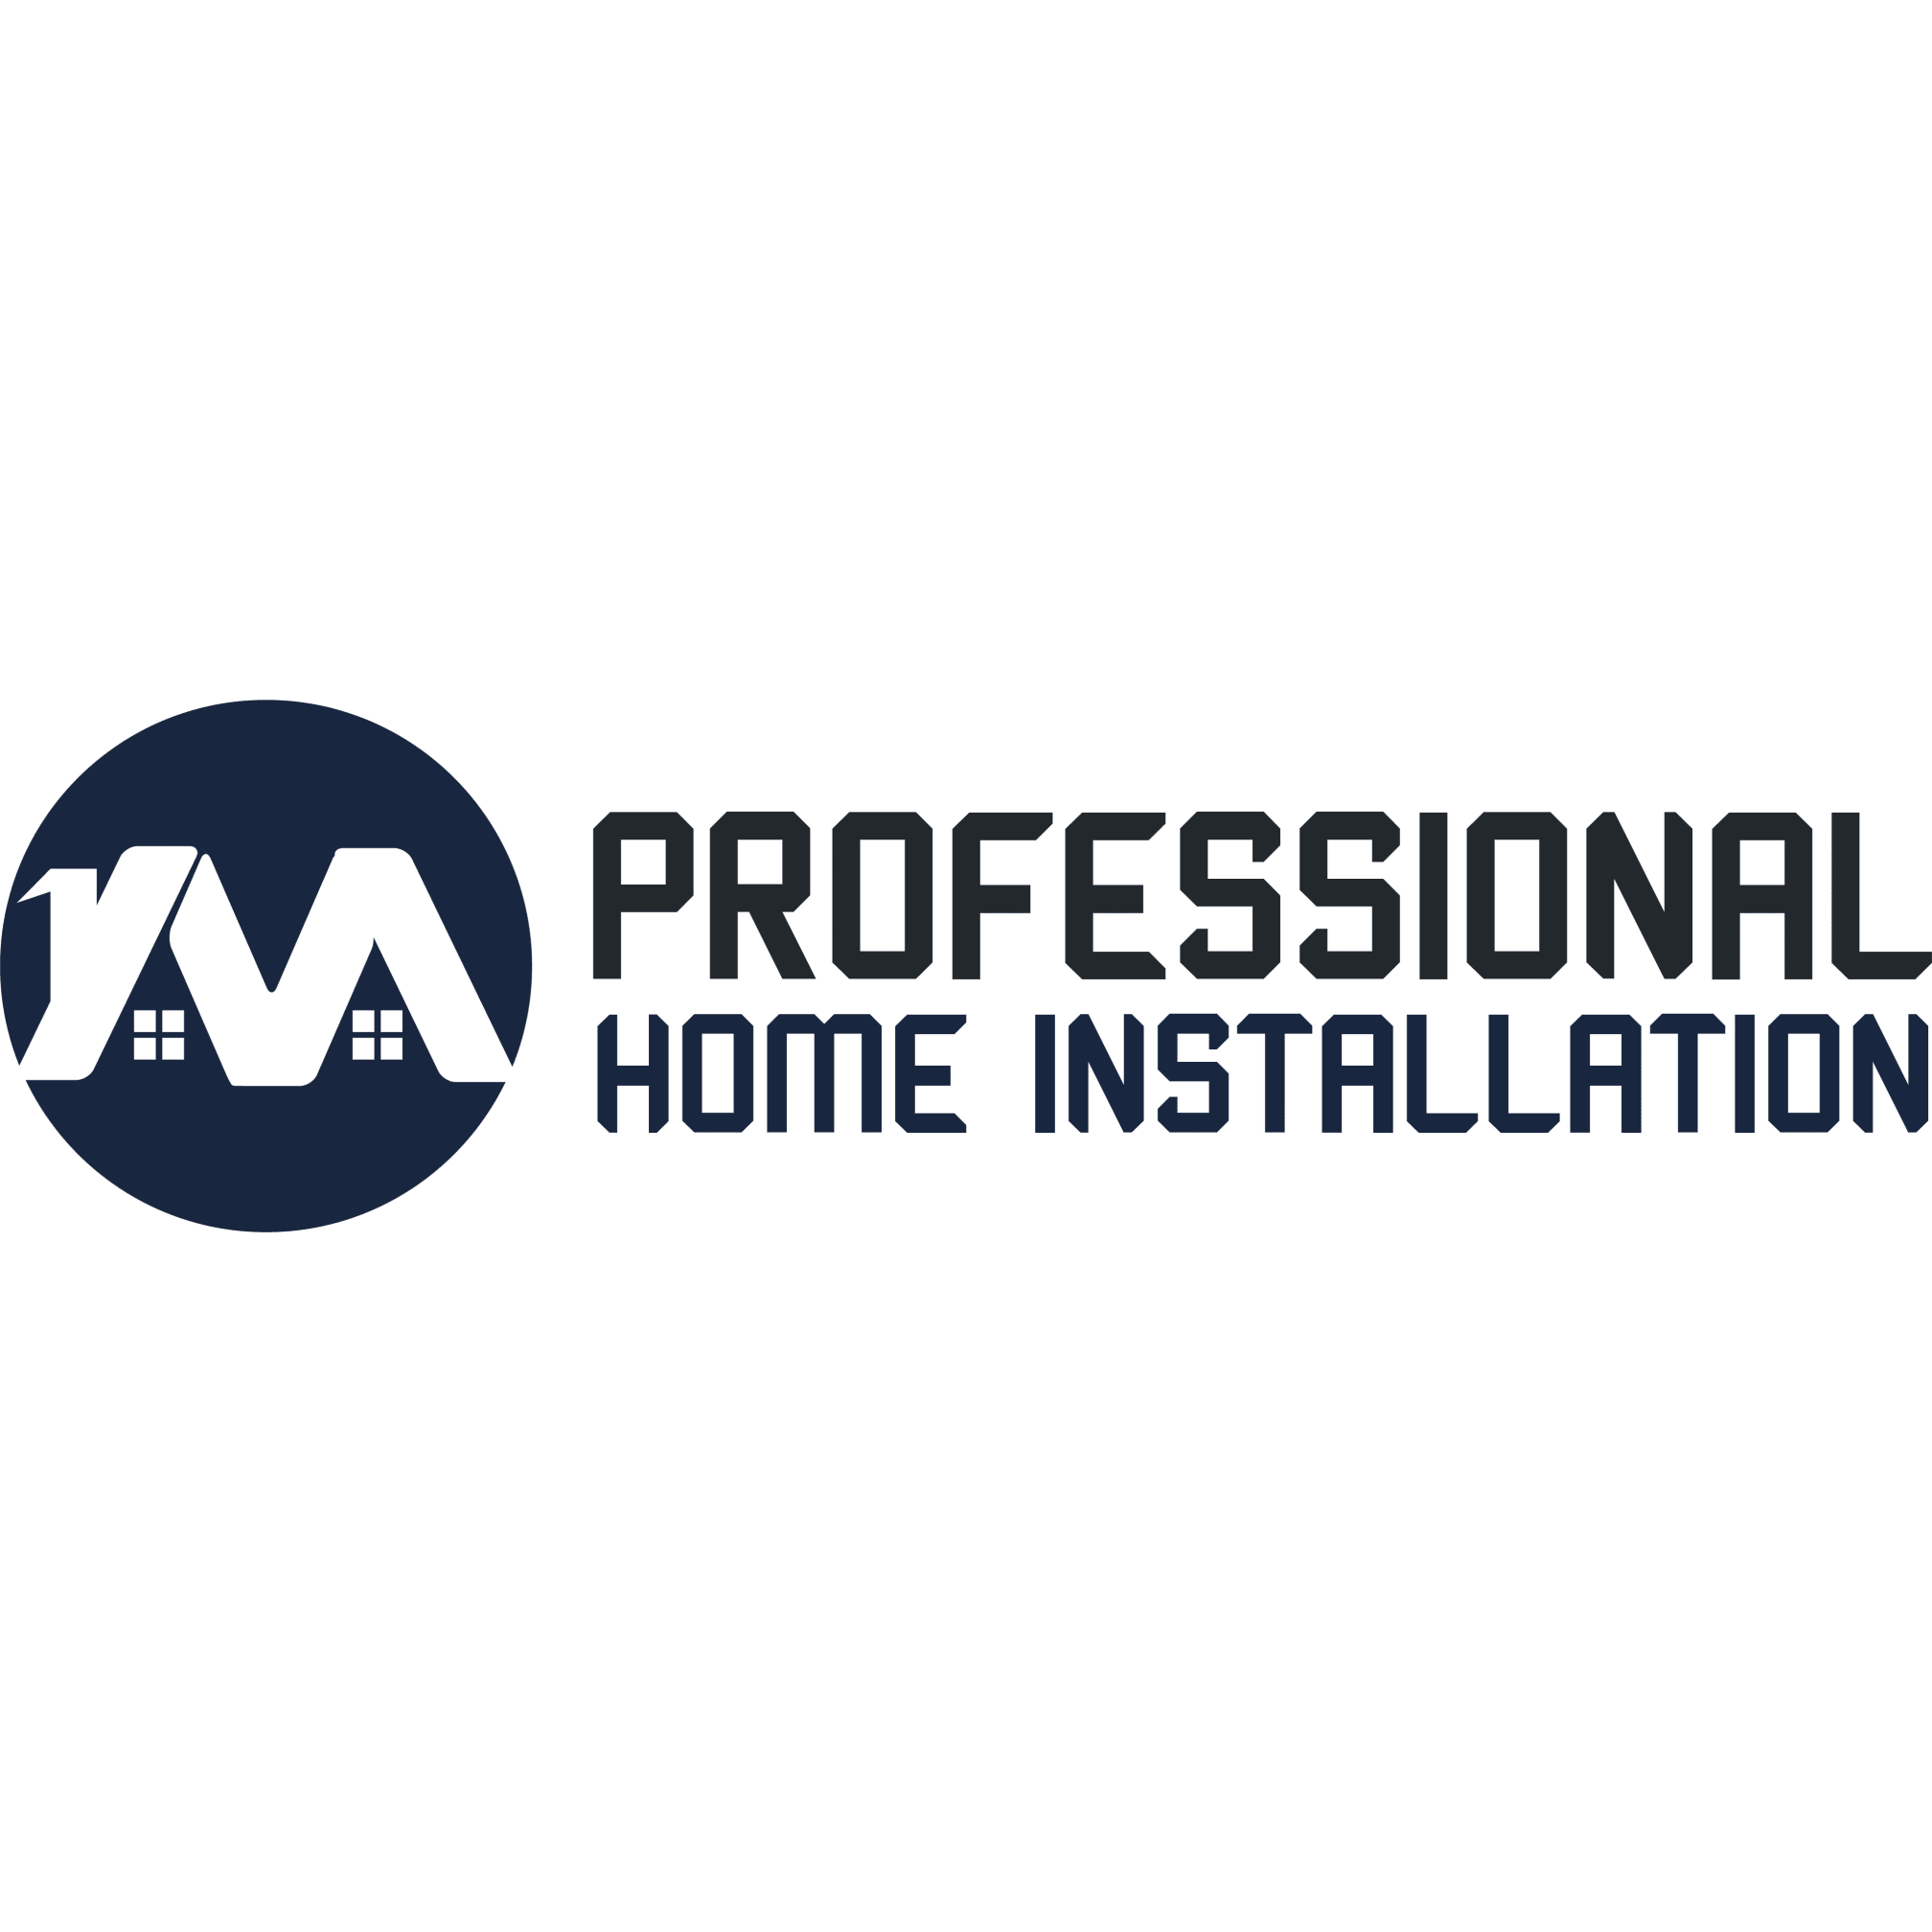 Professional Home Installation - Pudsey, West Yorkshire LS28 6LW - 07541 509416 | ShowMeLocal.com